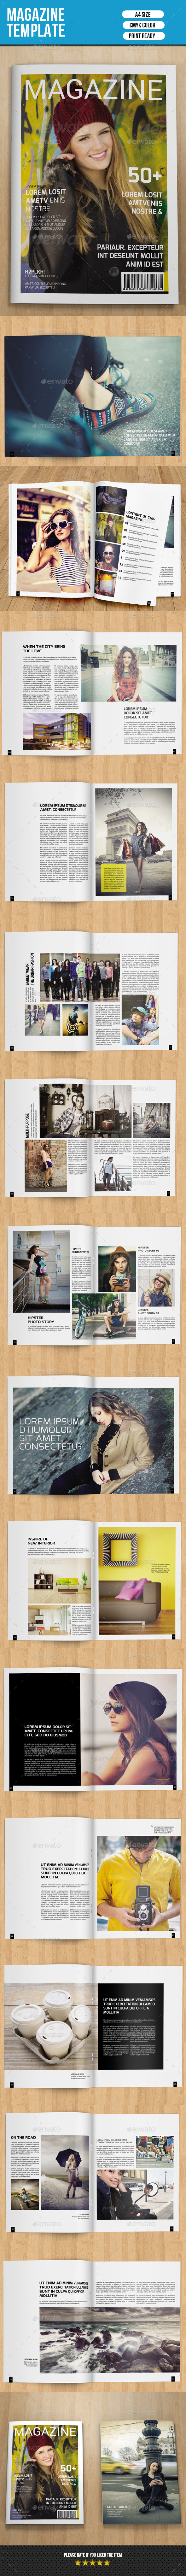 GraphicRiver Minimal Fashion Magazine-V06 10797113